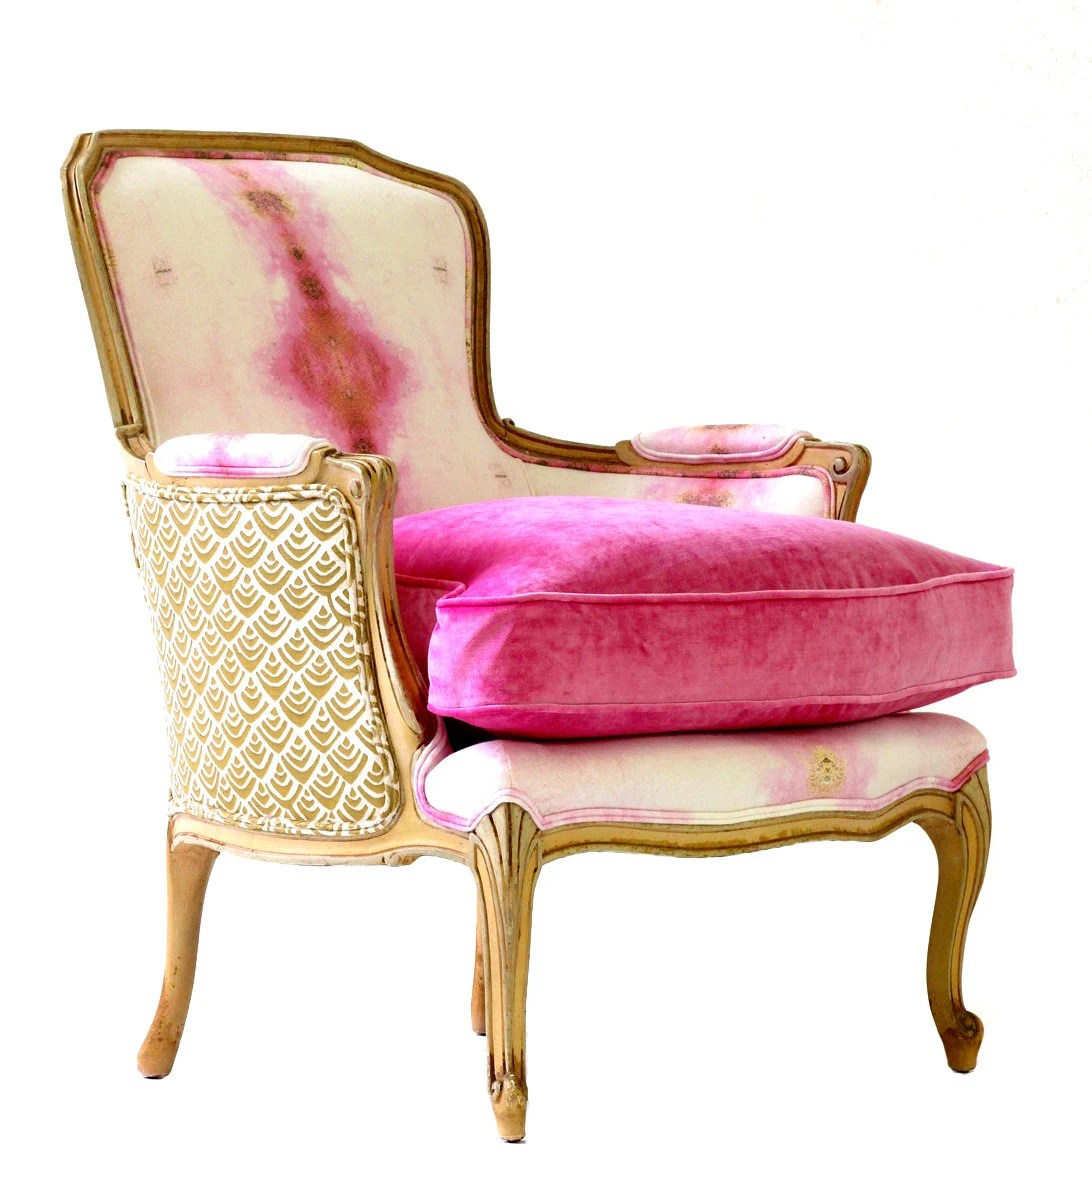 Pink Upholstered Chair French Bergere Upholstered Pink Opal Chair